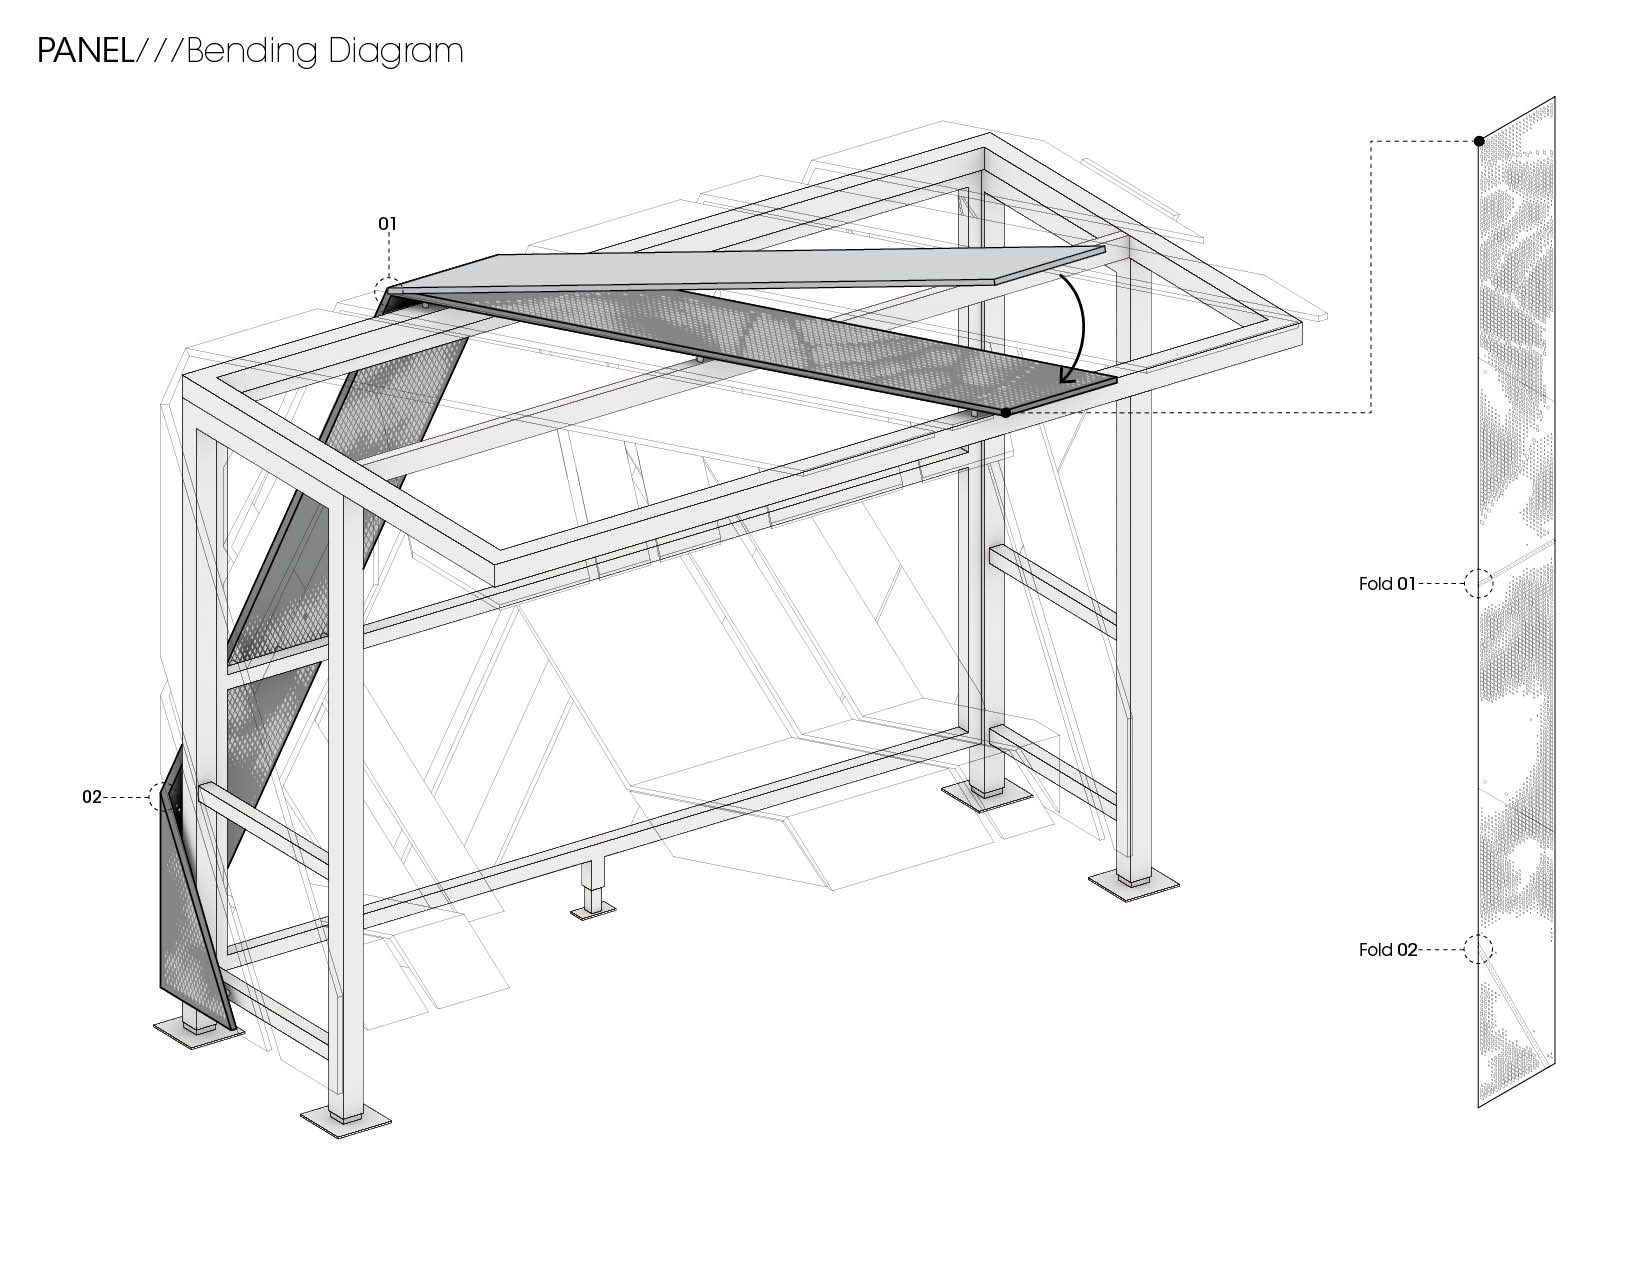 Asteriskos-Design-Digital-Fabrication-Mary-O'Connor-Memorial-Transit-Shelter-Architekton-Tempe-Diagram.jpg